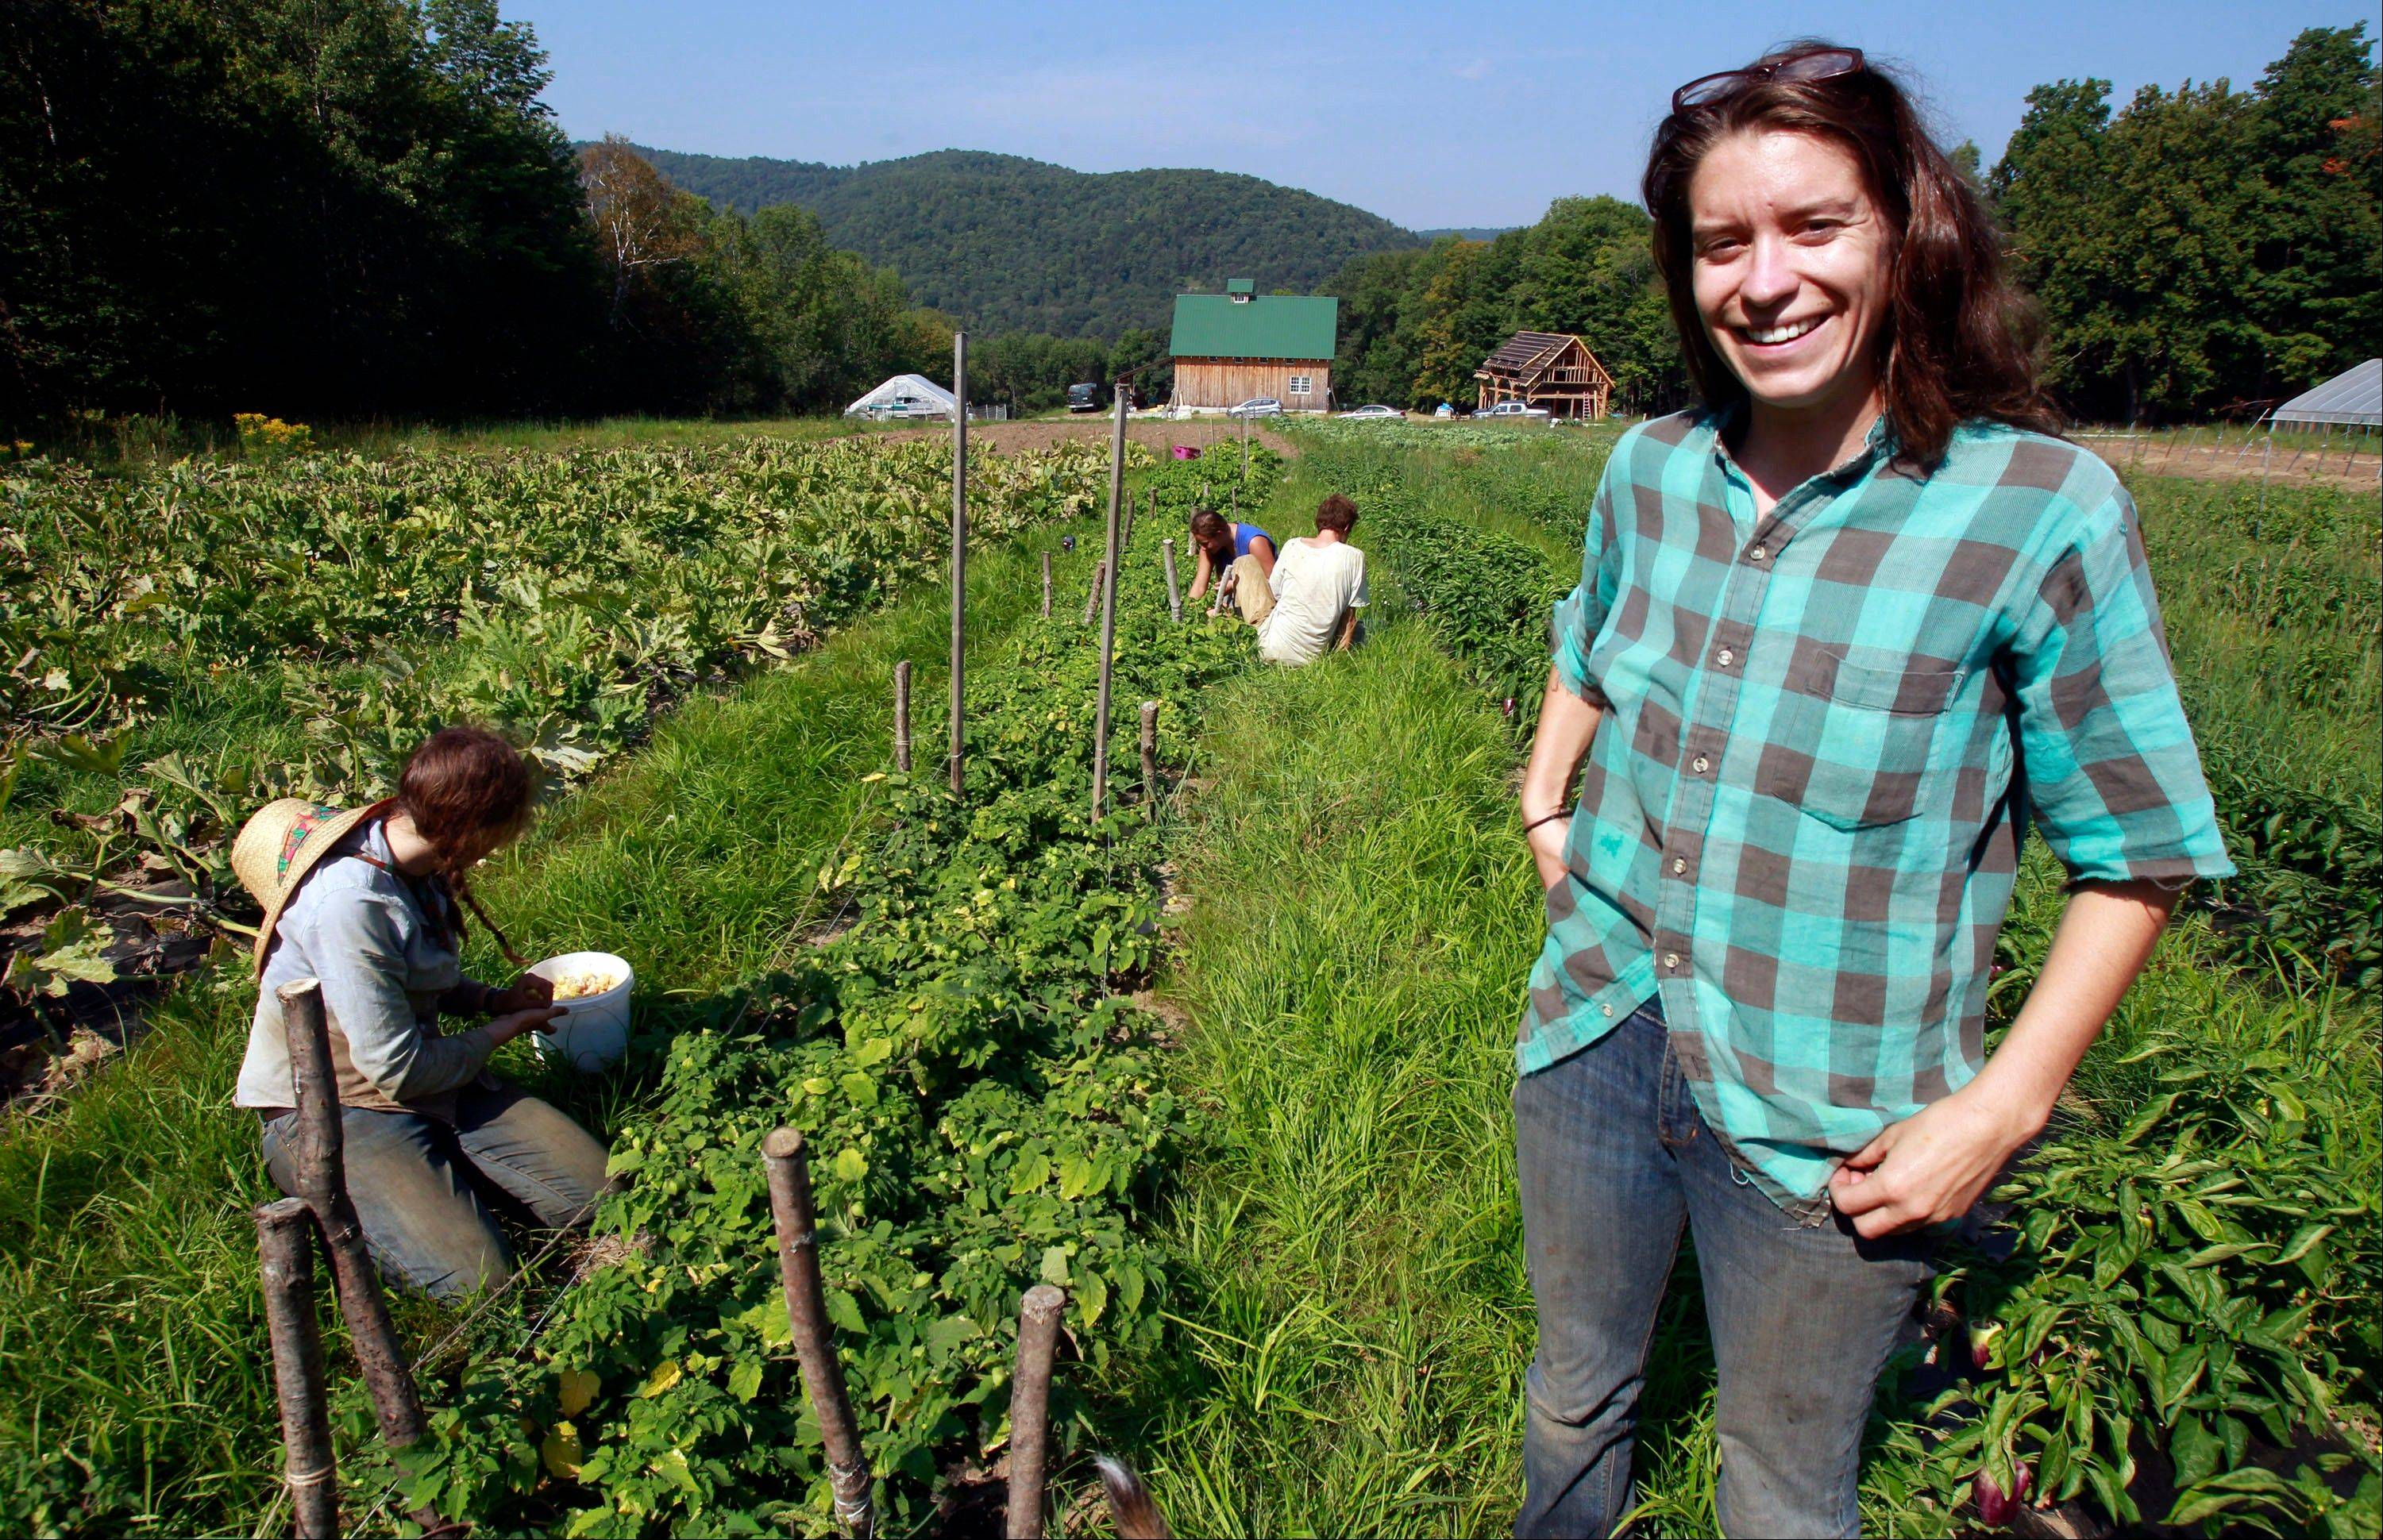 Kara Fitzgerald stands at her new farm location in Shrewsbury, Vt. Two years after Irene washed away 10 acres of summer crops and topsoil, Evening Song Farm is back selling produce -- thanks in part to borrowed money and borrowed land. Today she grows crops on a hillside about a mile away.